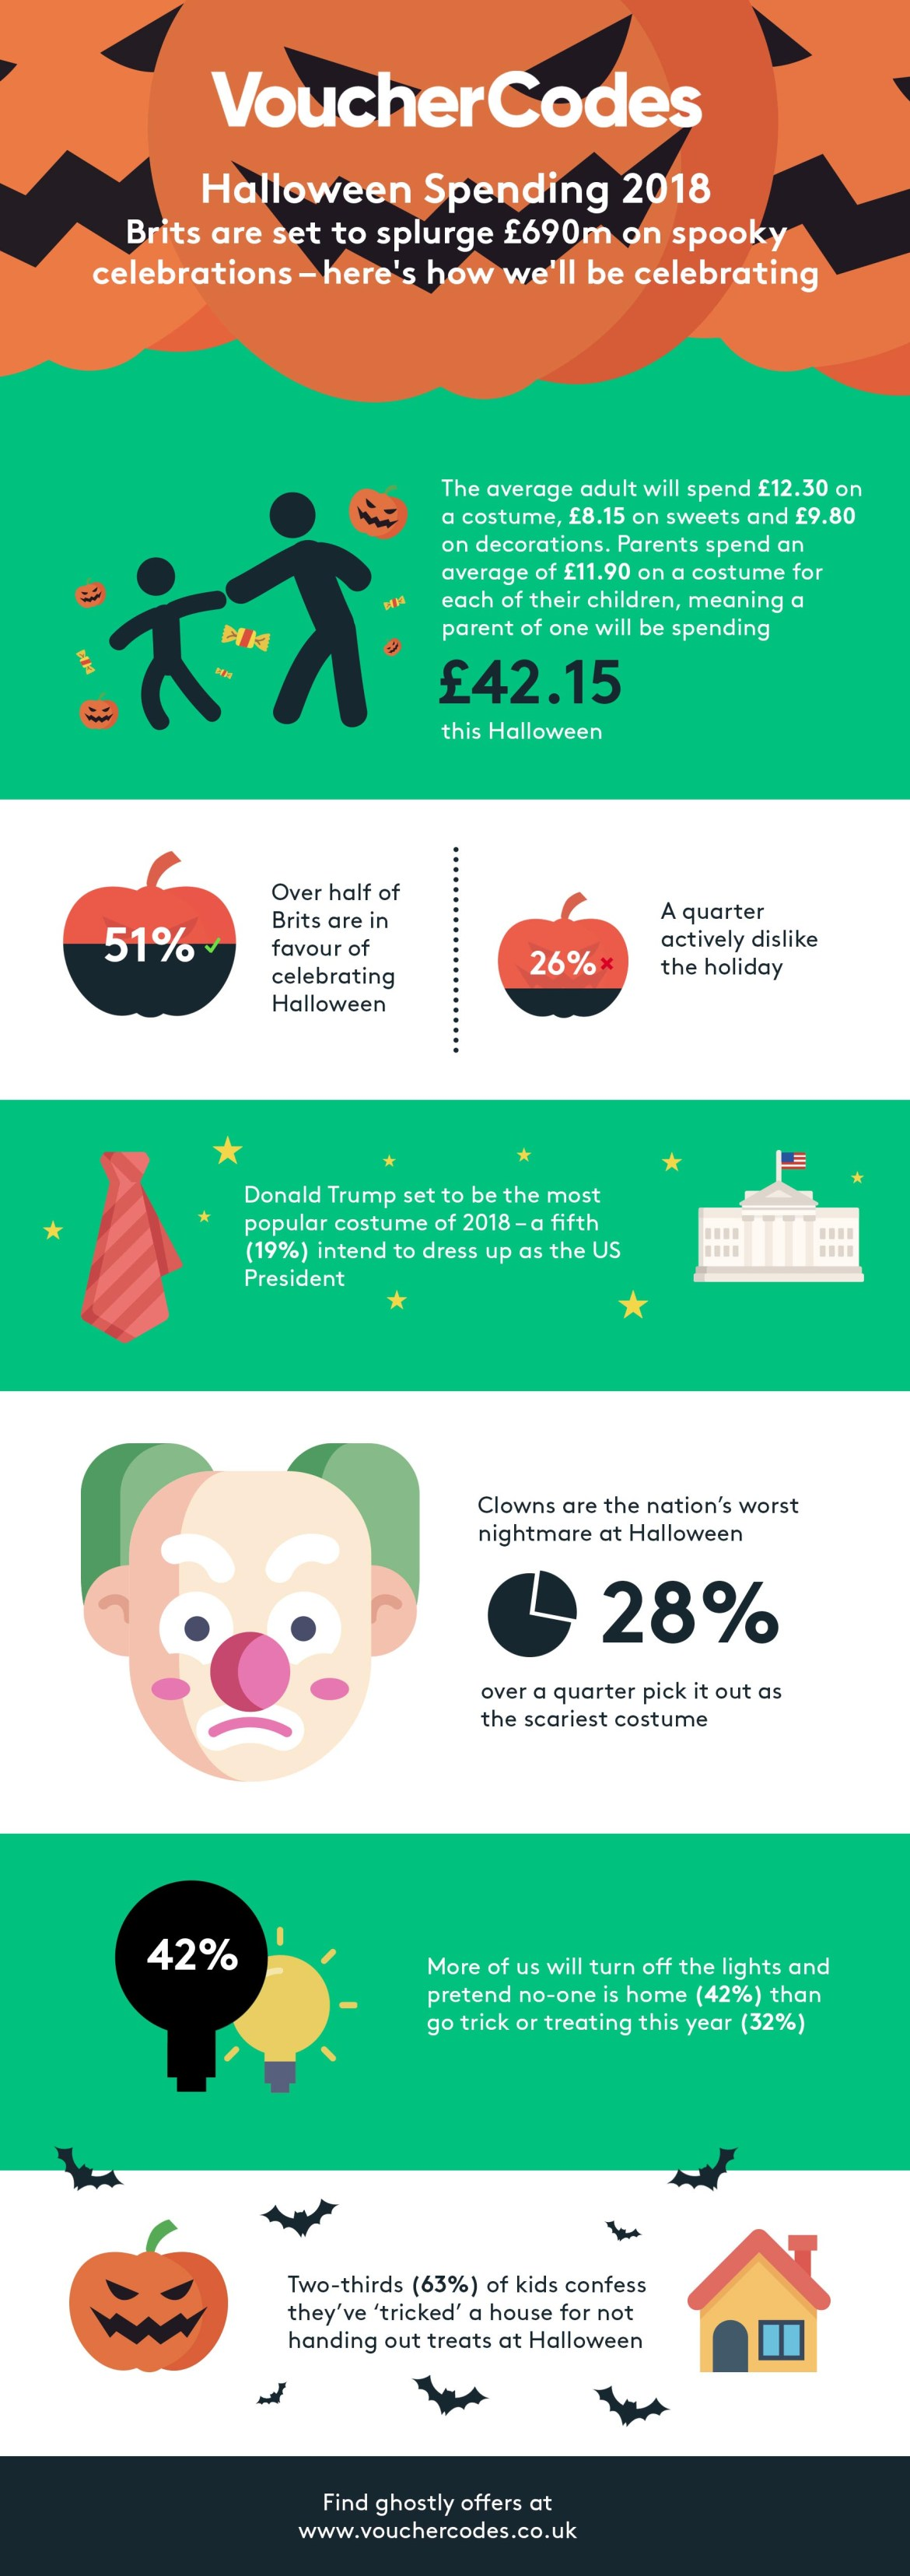 Halloween spending 2018 infographic